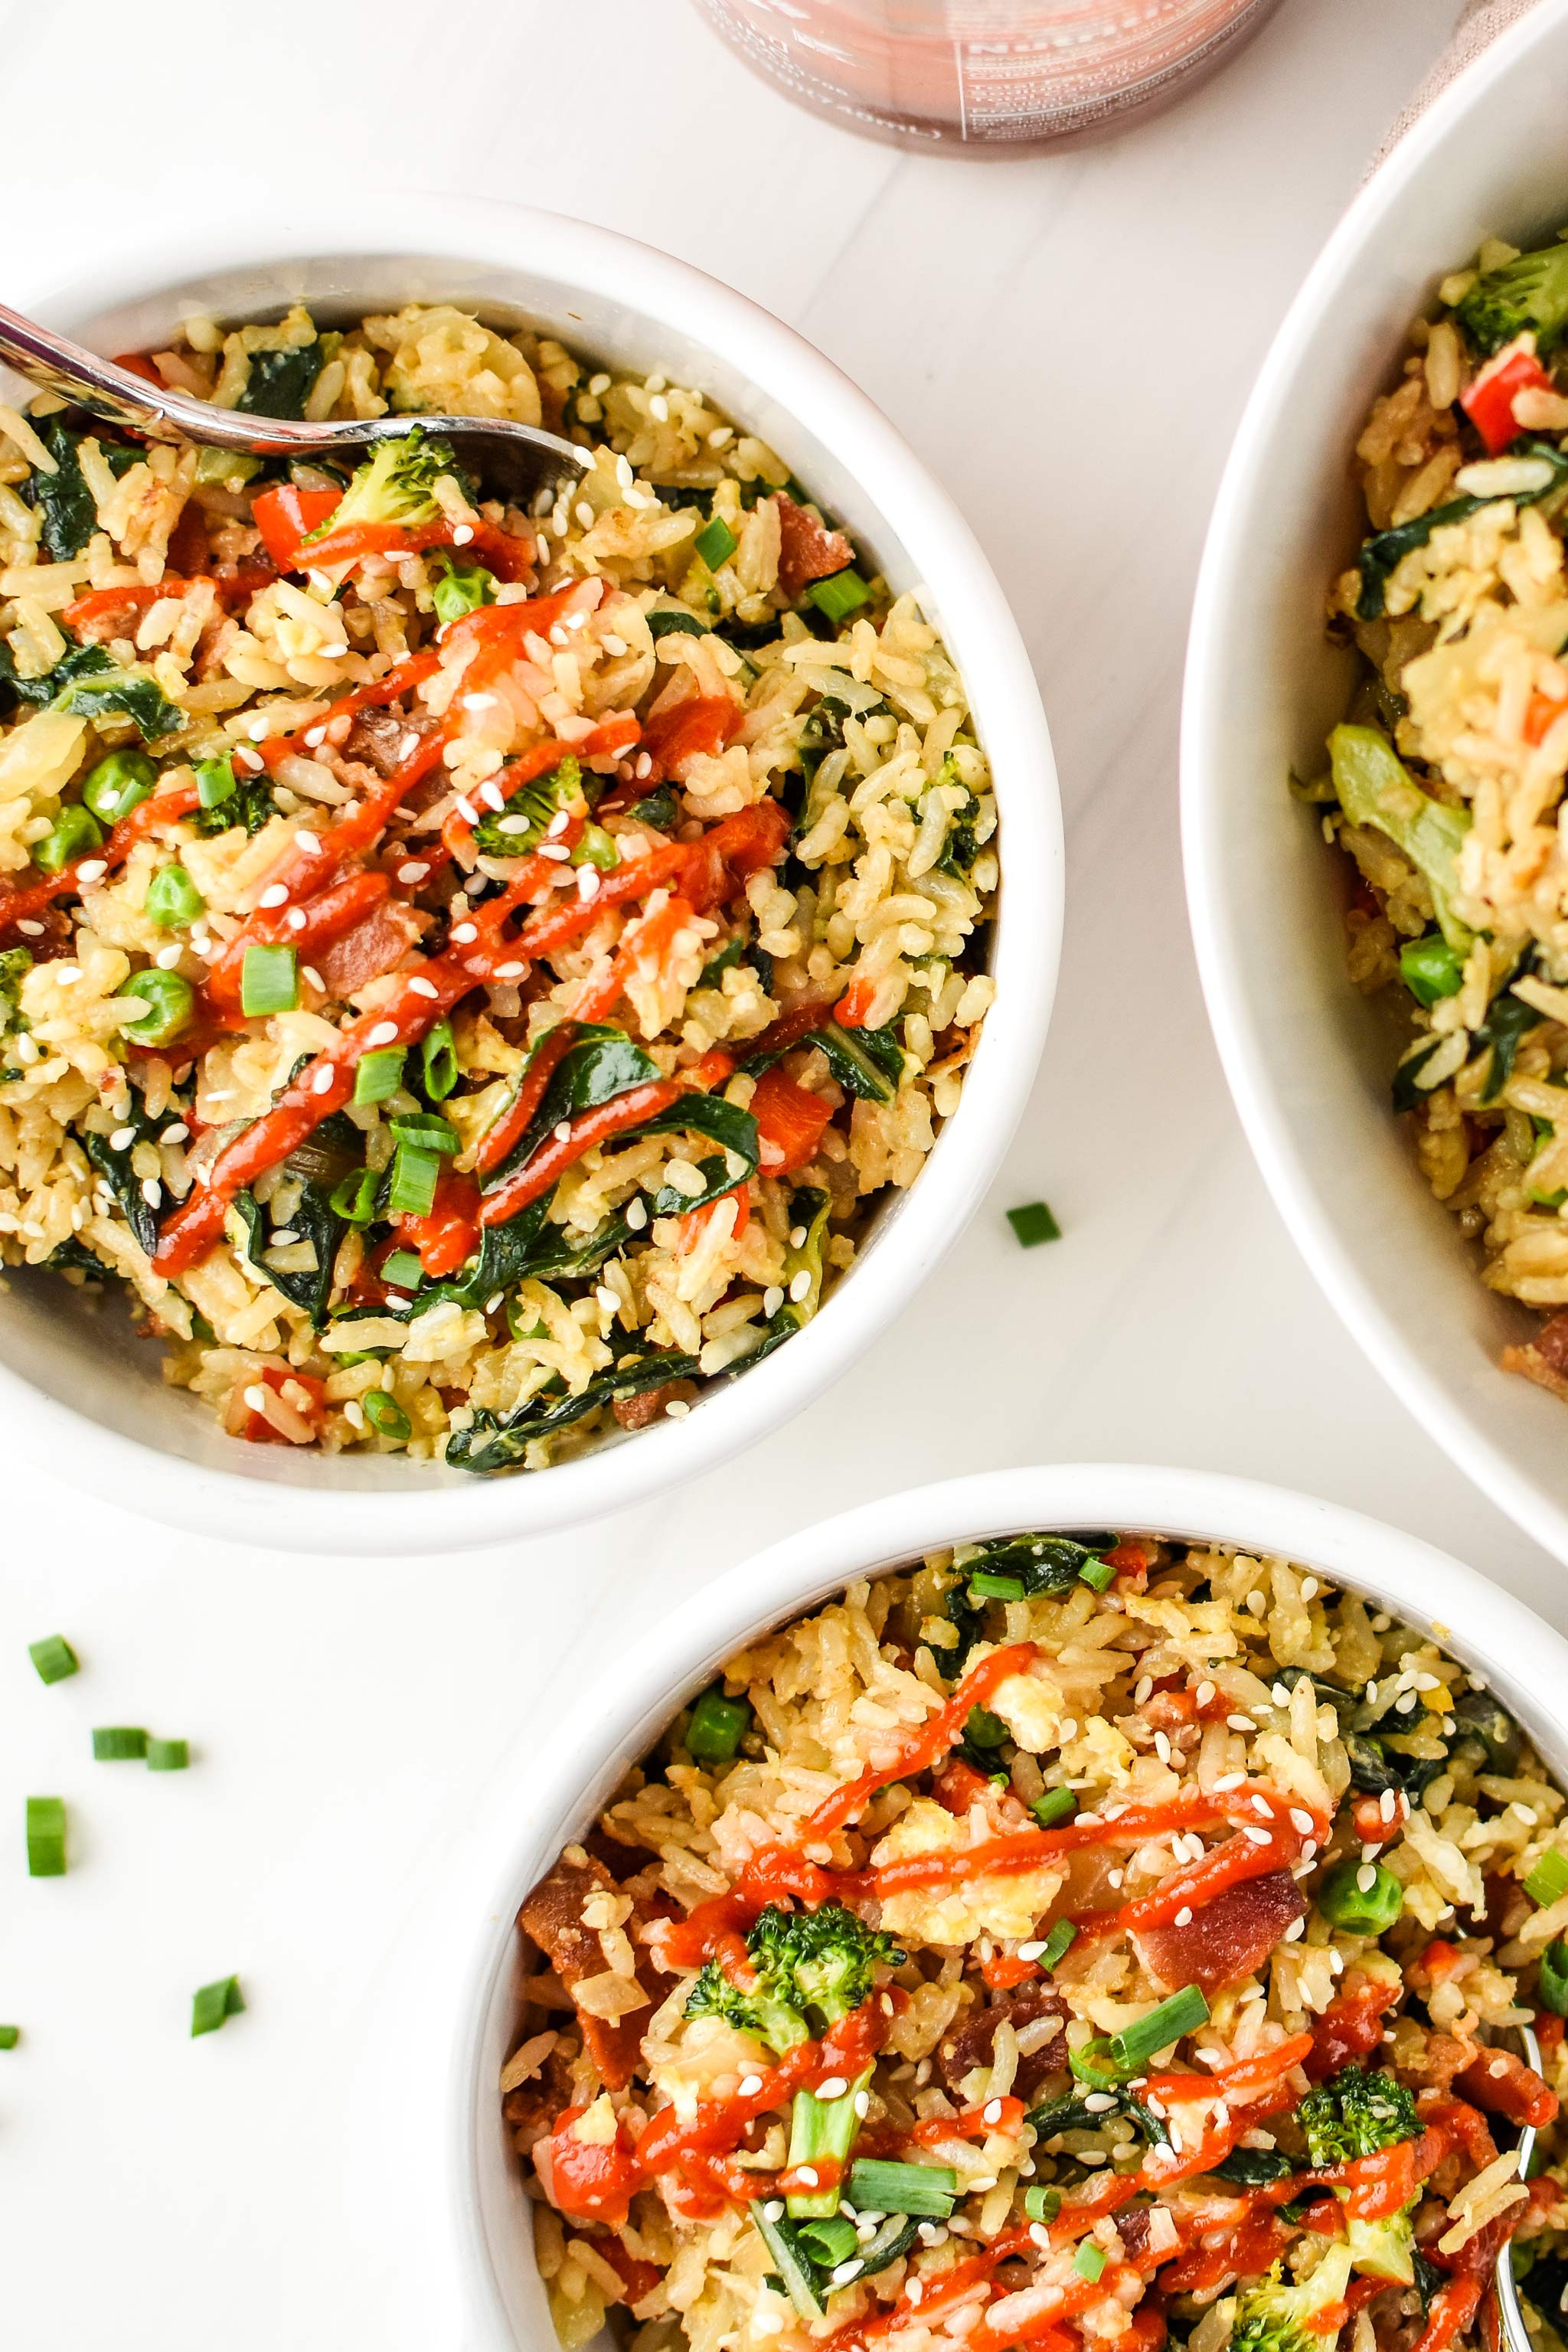 Bowls of veggie packed breakfast fried rice seen from above